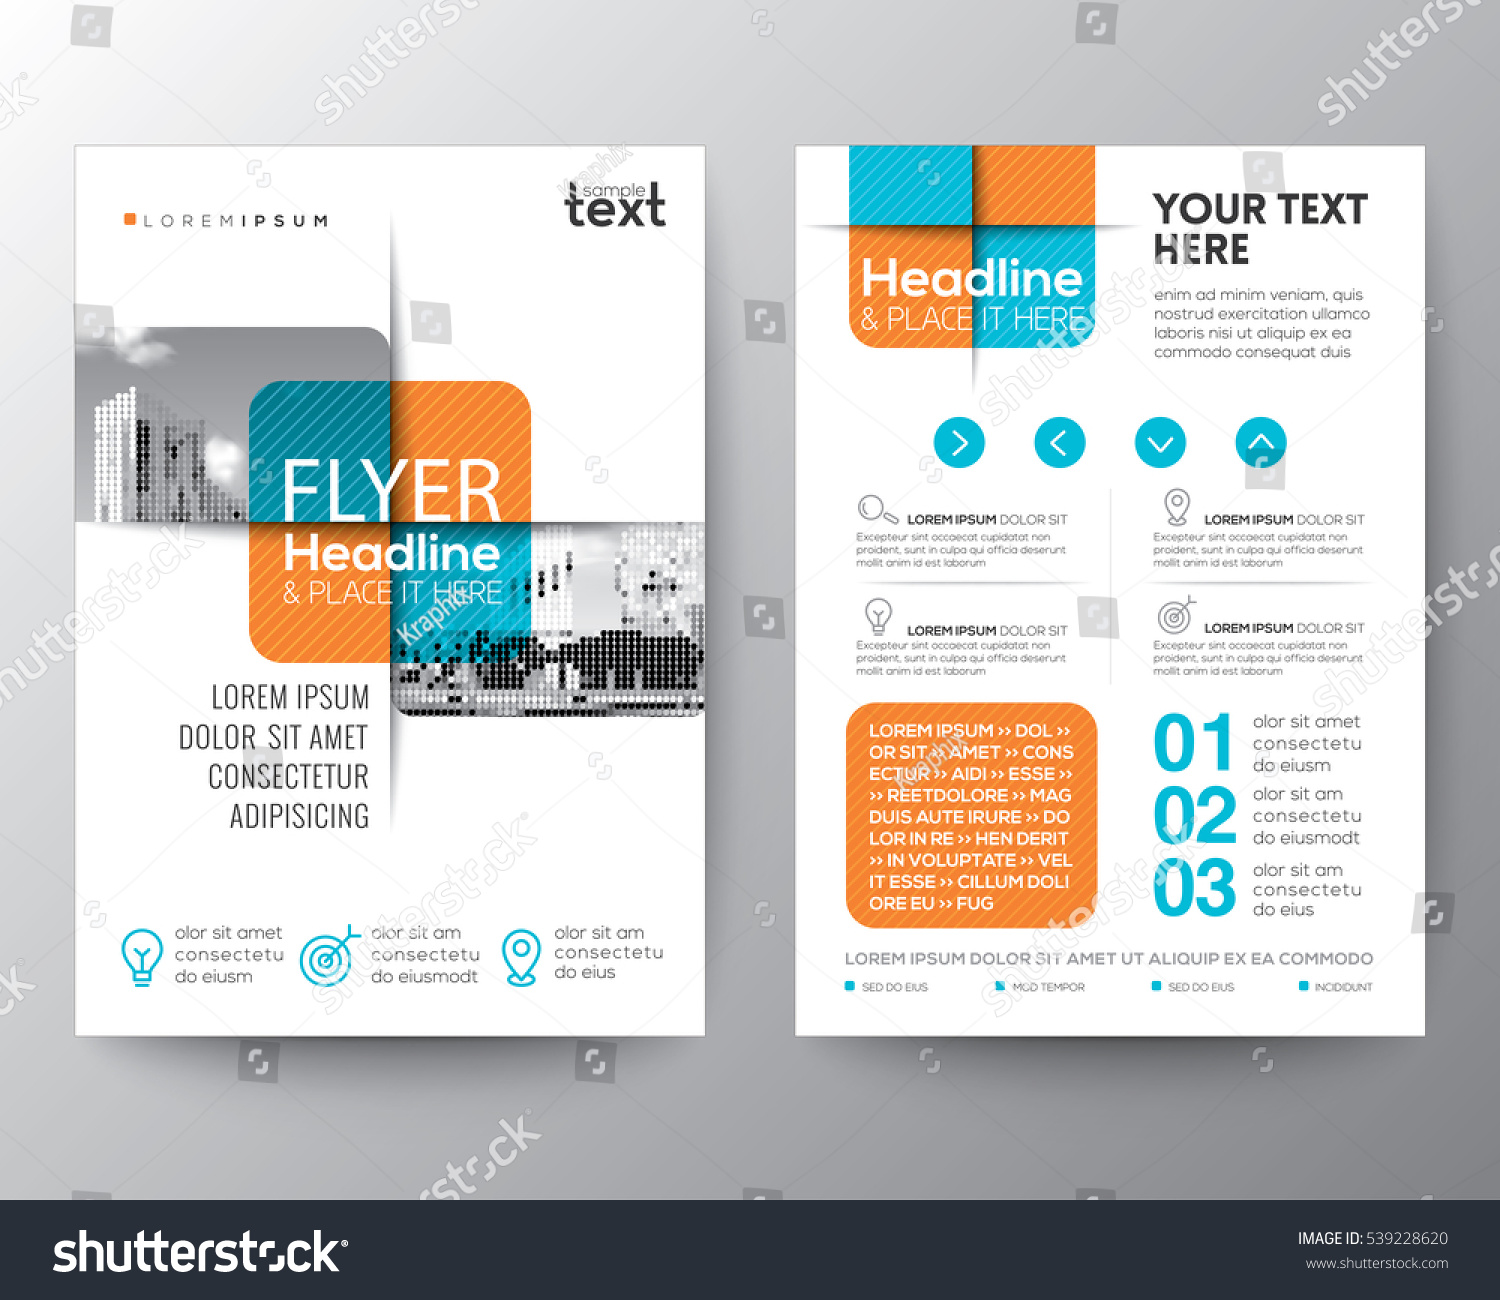 Poster design vector graphics - Cross Square Graphic Element Brochure Cover Flyer Poster Design Layout Vector Template In A4 Size